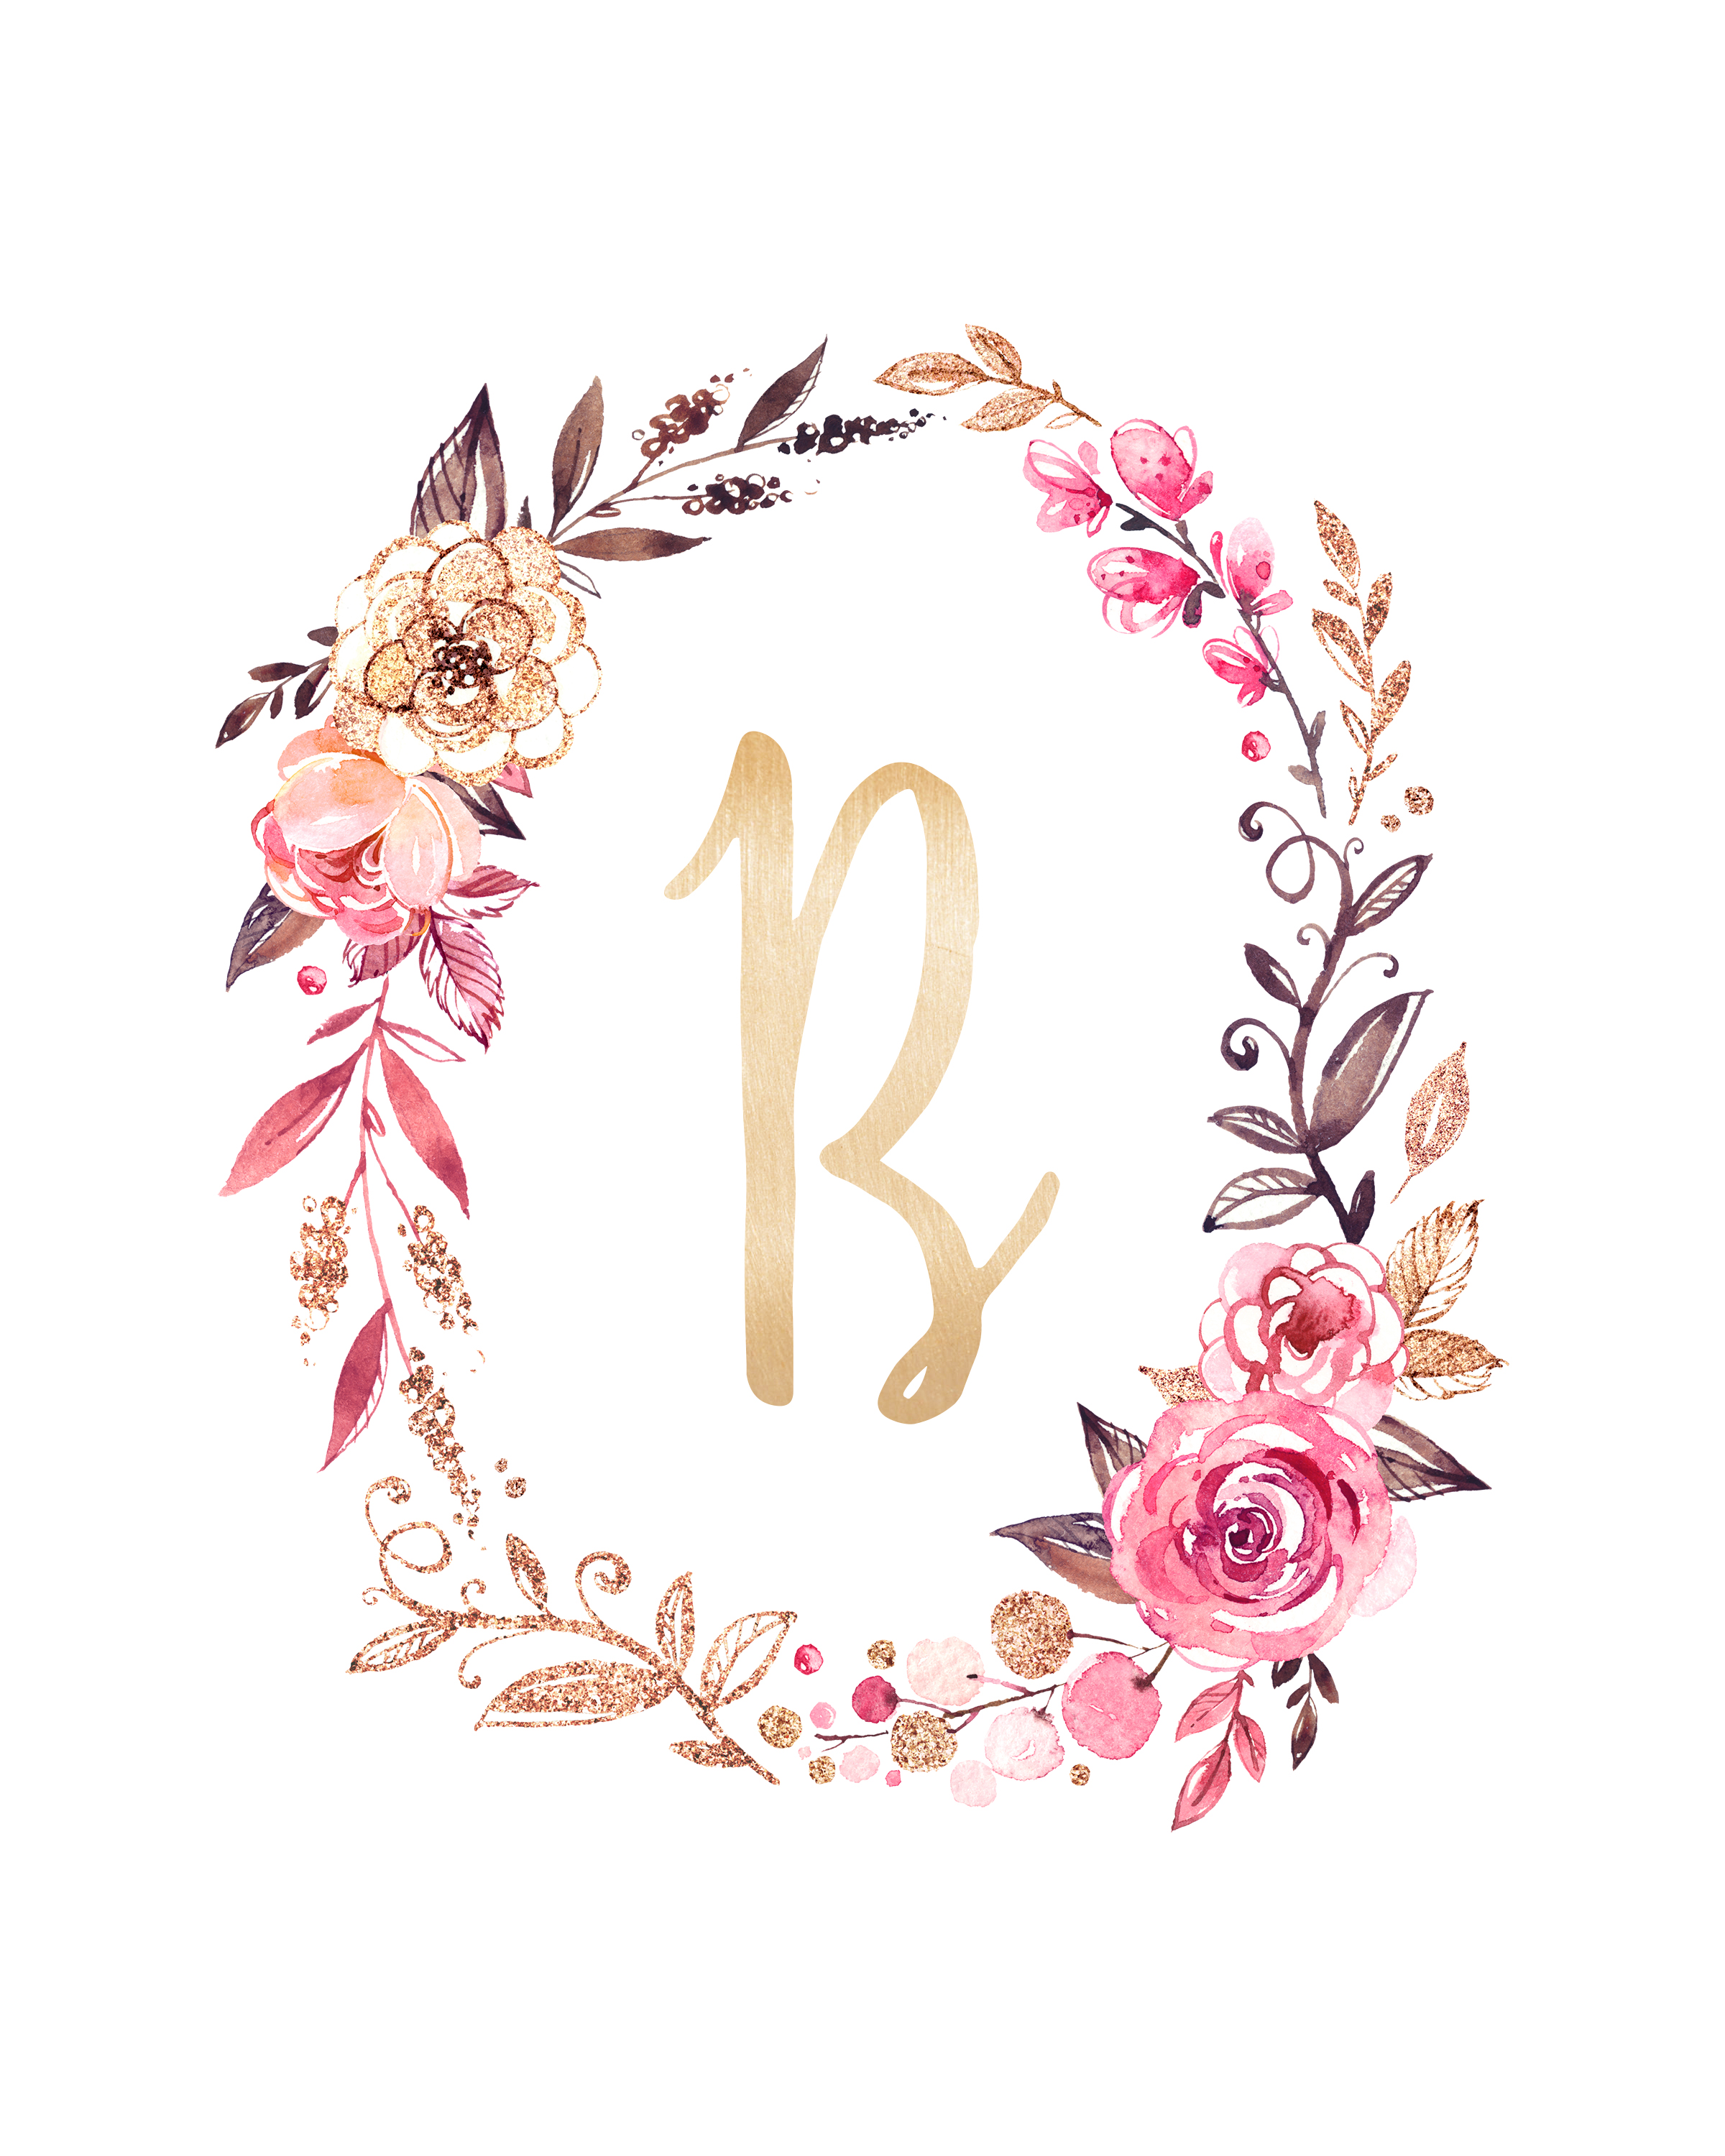 It's just a graphic of Printable Monogram Letters for free stencil